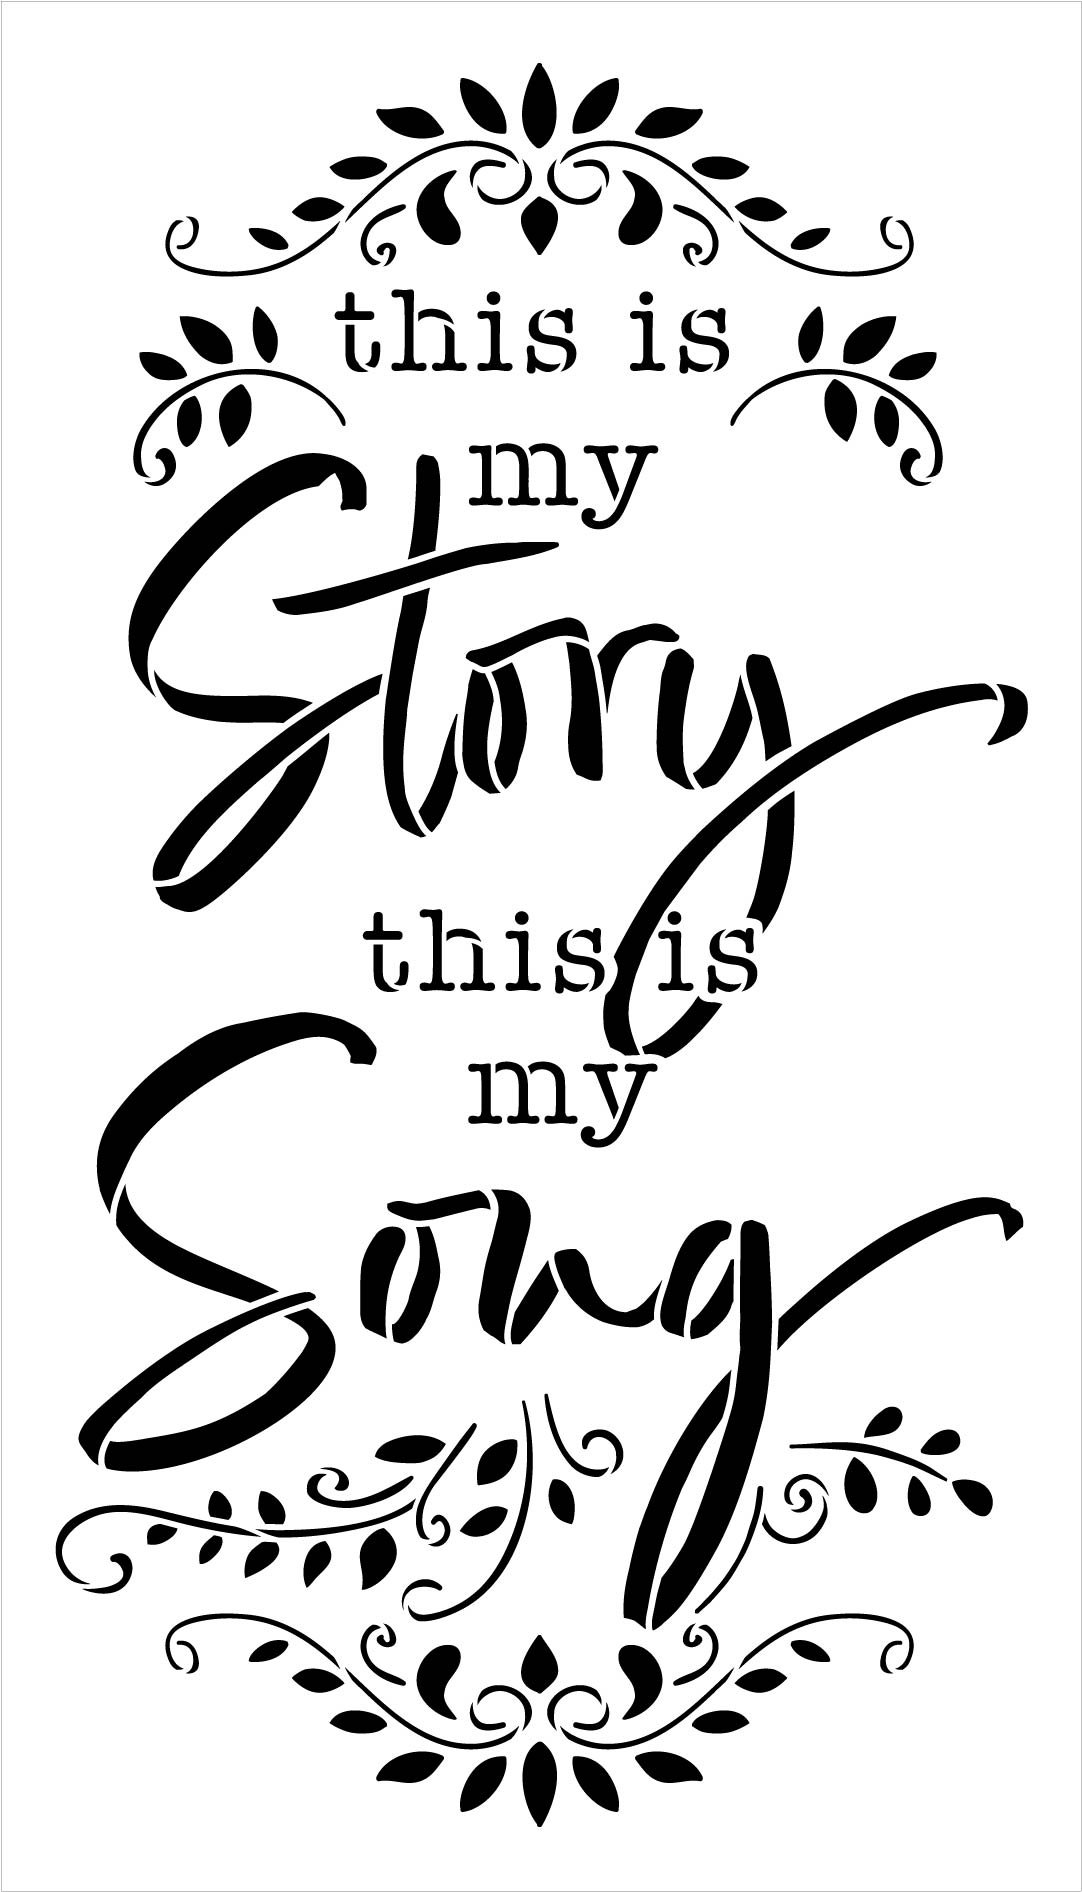 This is My Story This is My Song Hymn Stencil by StudioR12   DIY Faith Home Decor   Craft & Paint Wood Sign   Reusable Mylar Template   Select Size